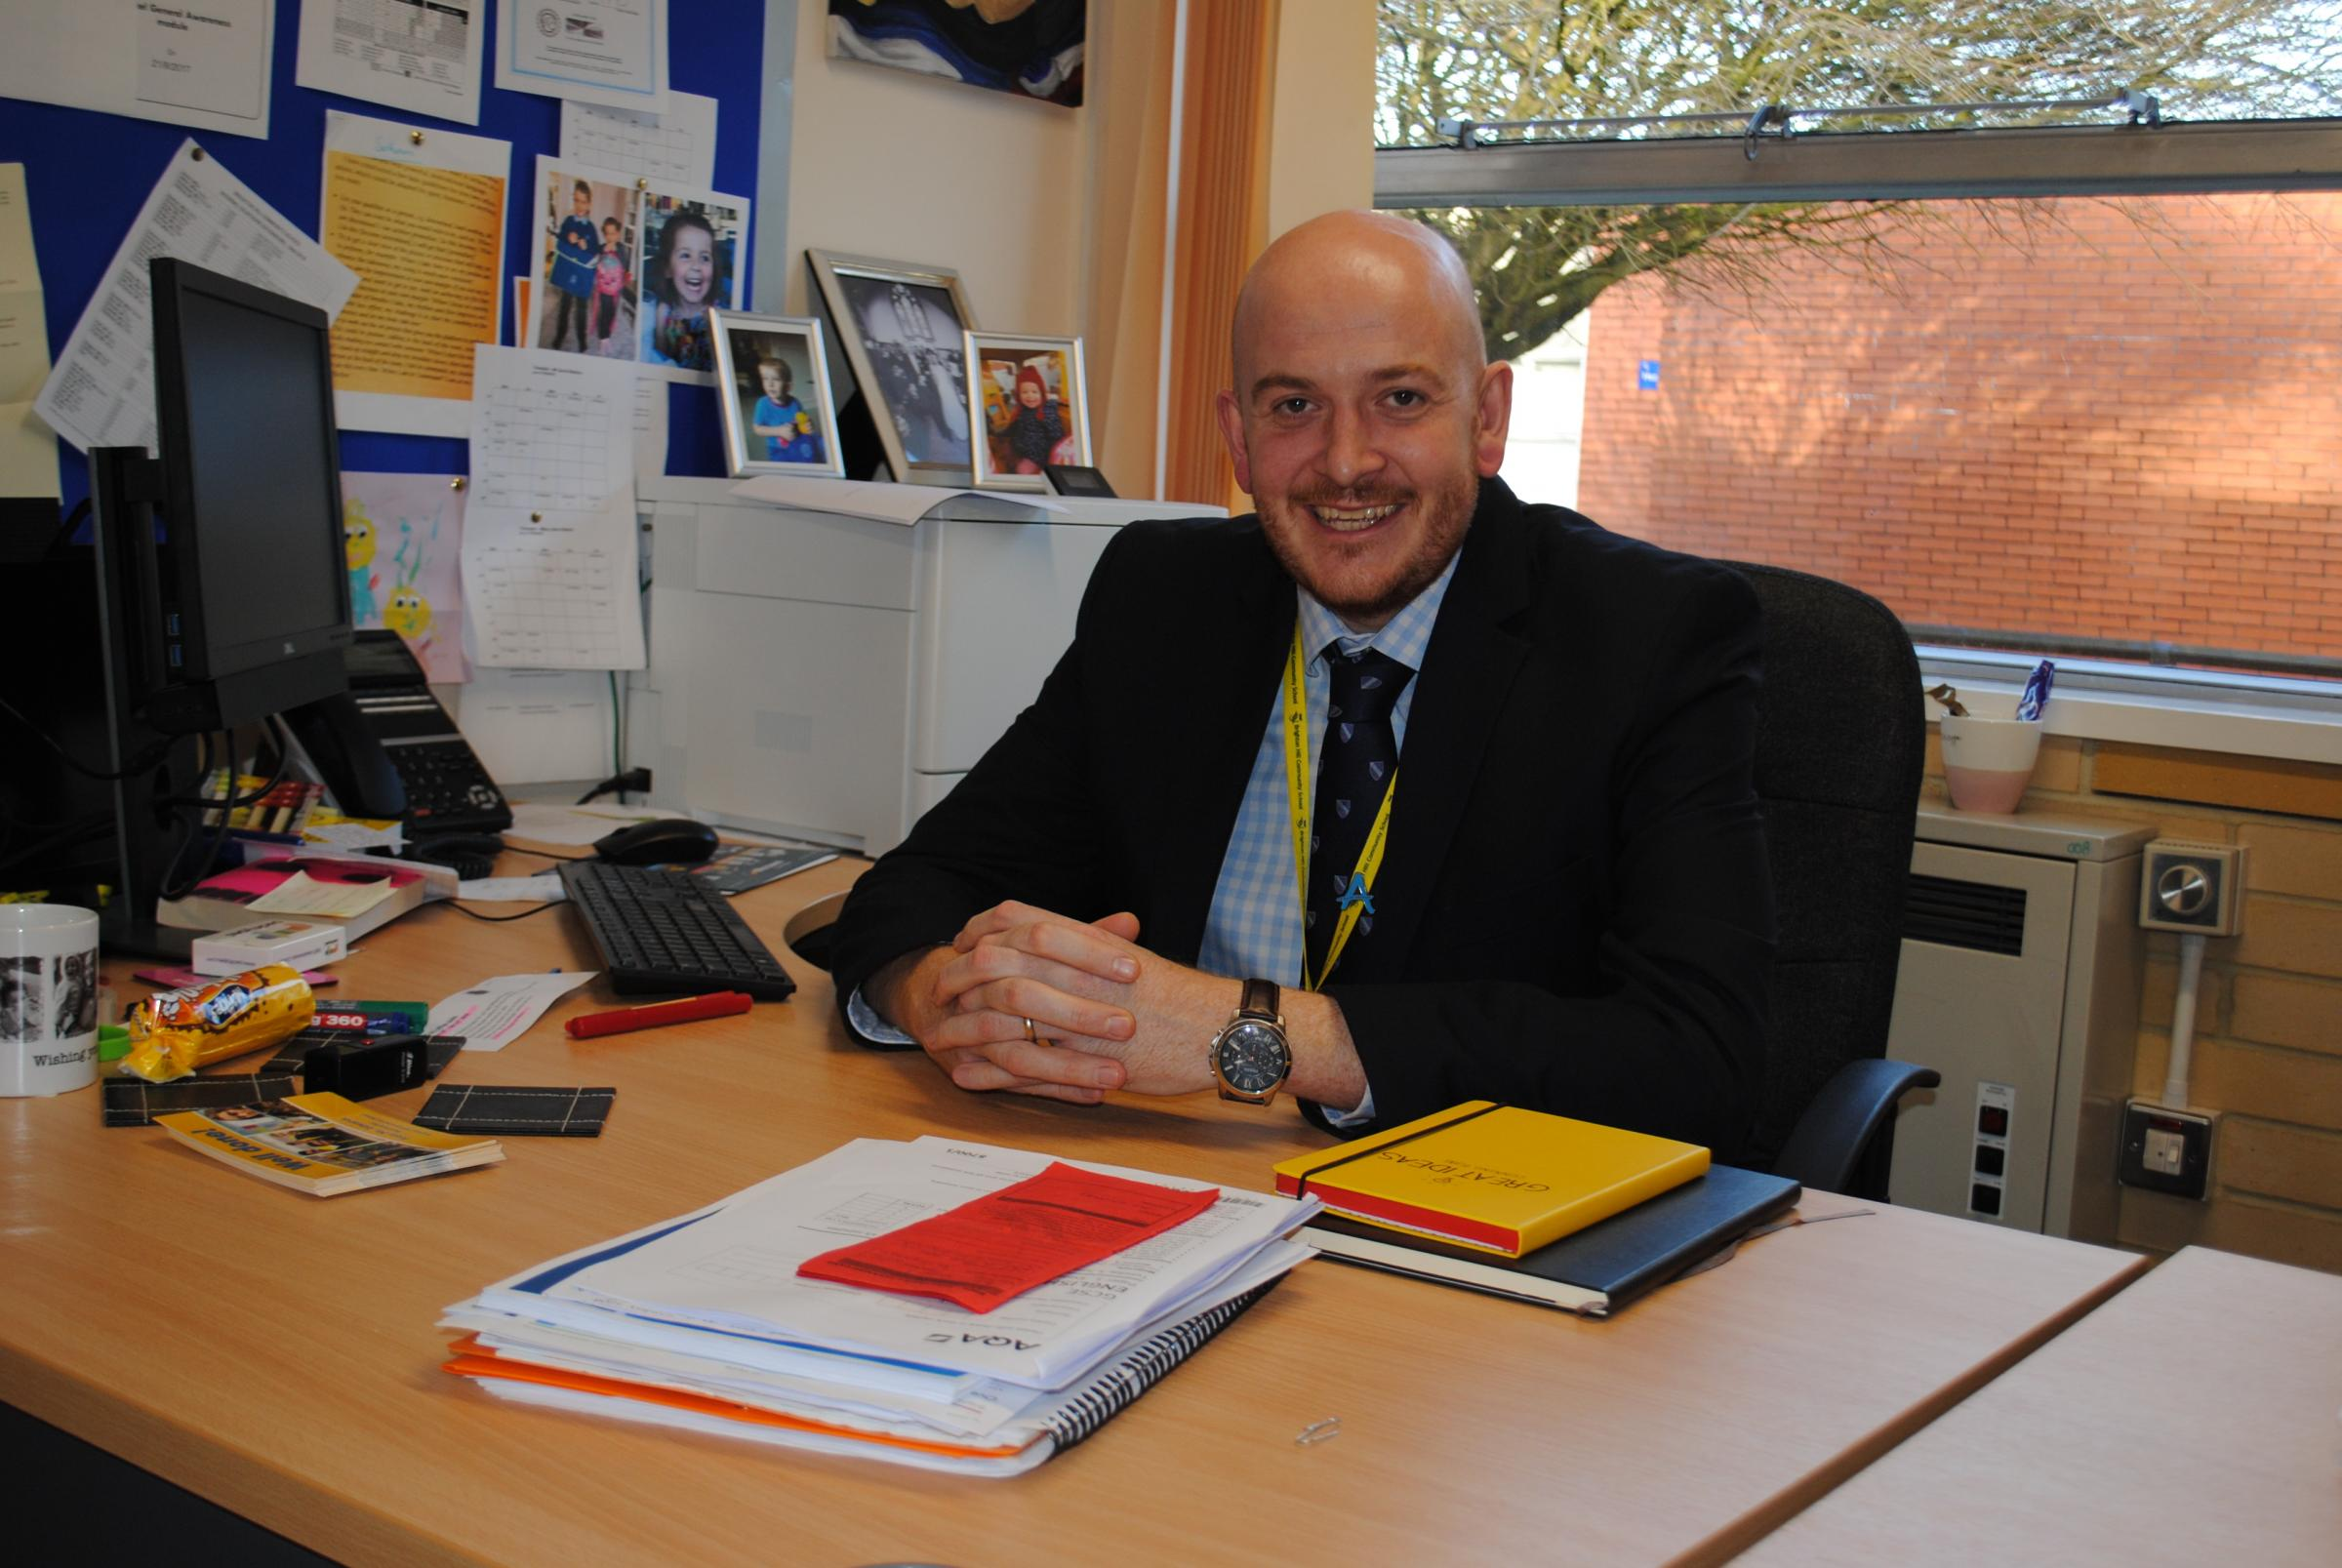 Chris Edwards, headteacher of Brighton Hill Community School